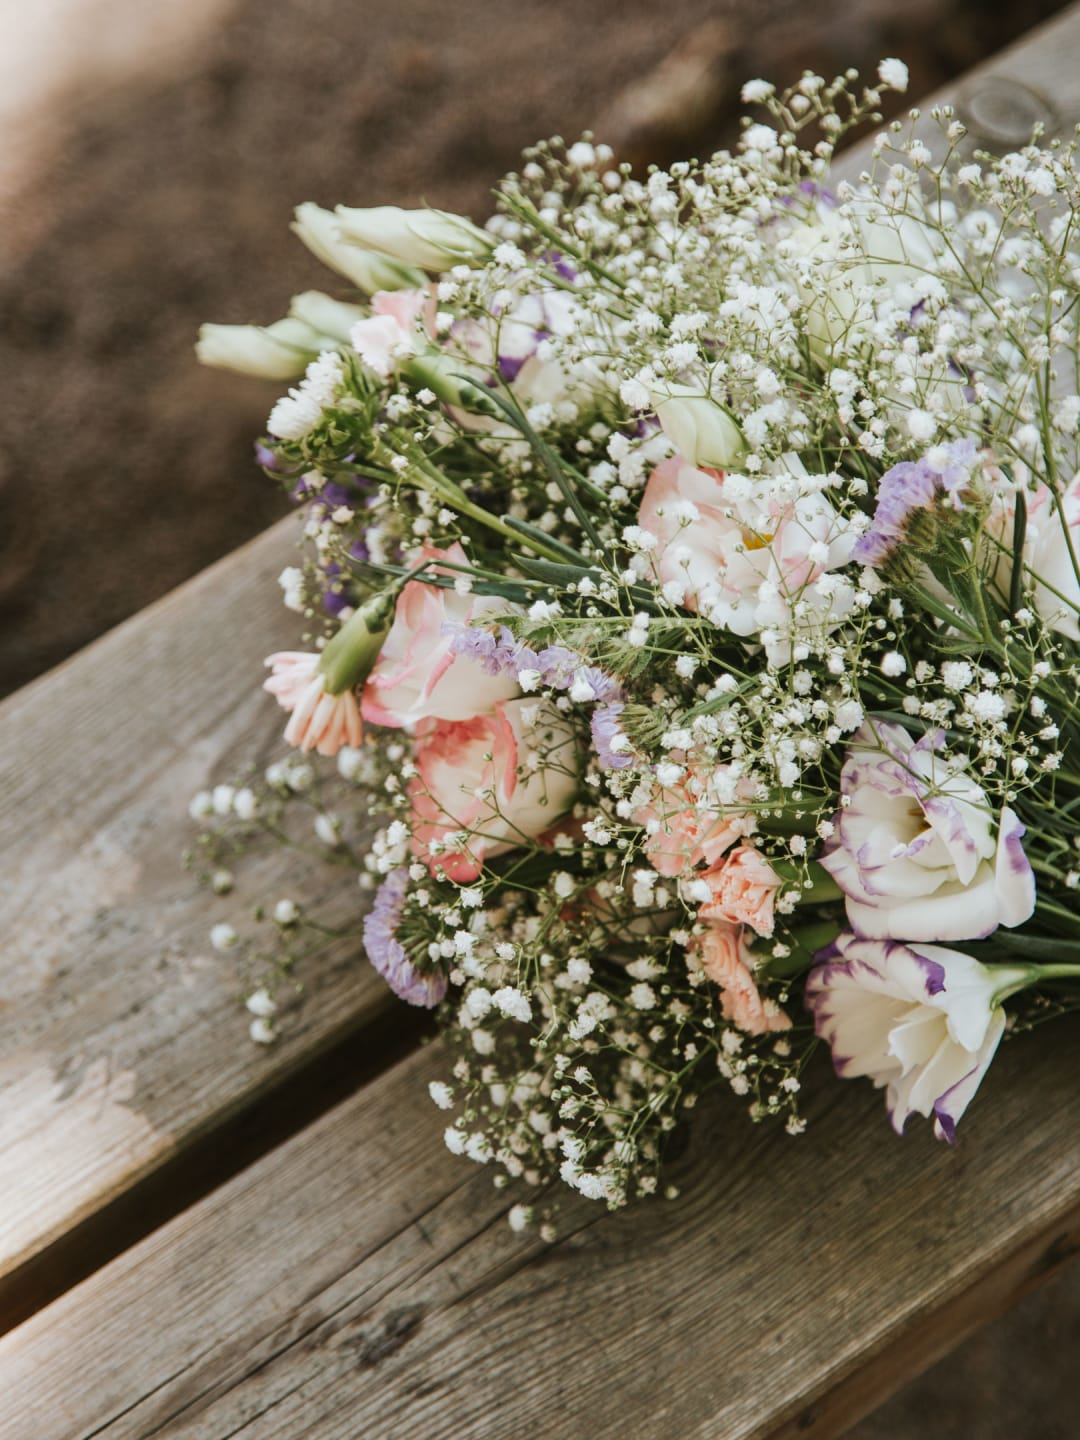 A close-up photograph of the brides flowers